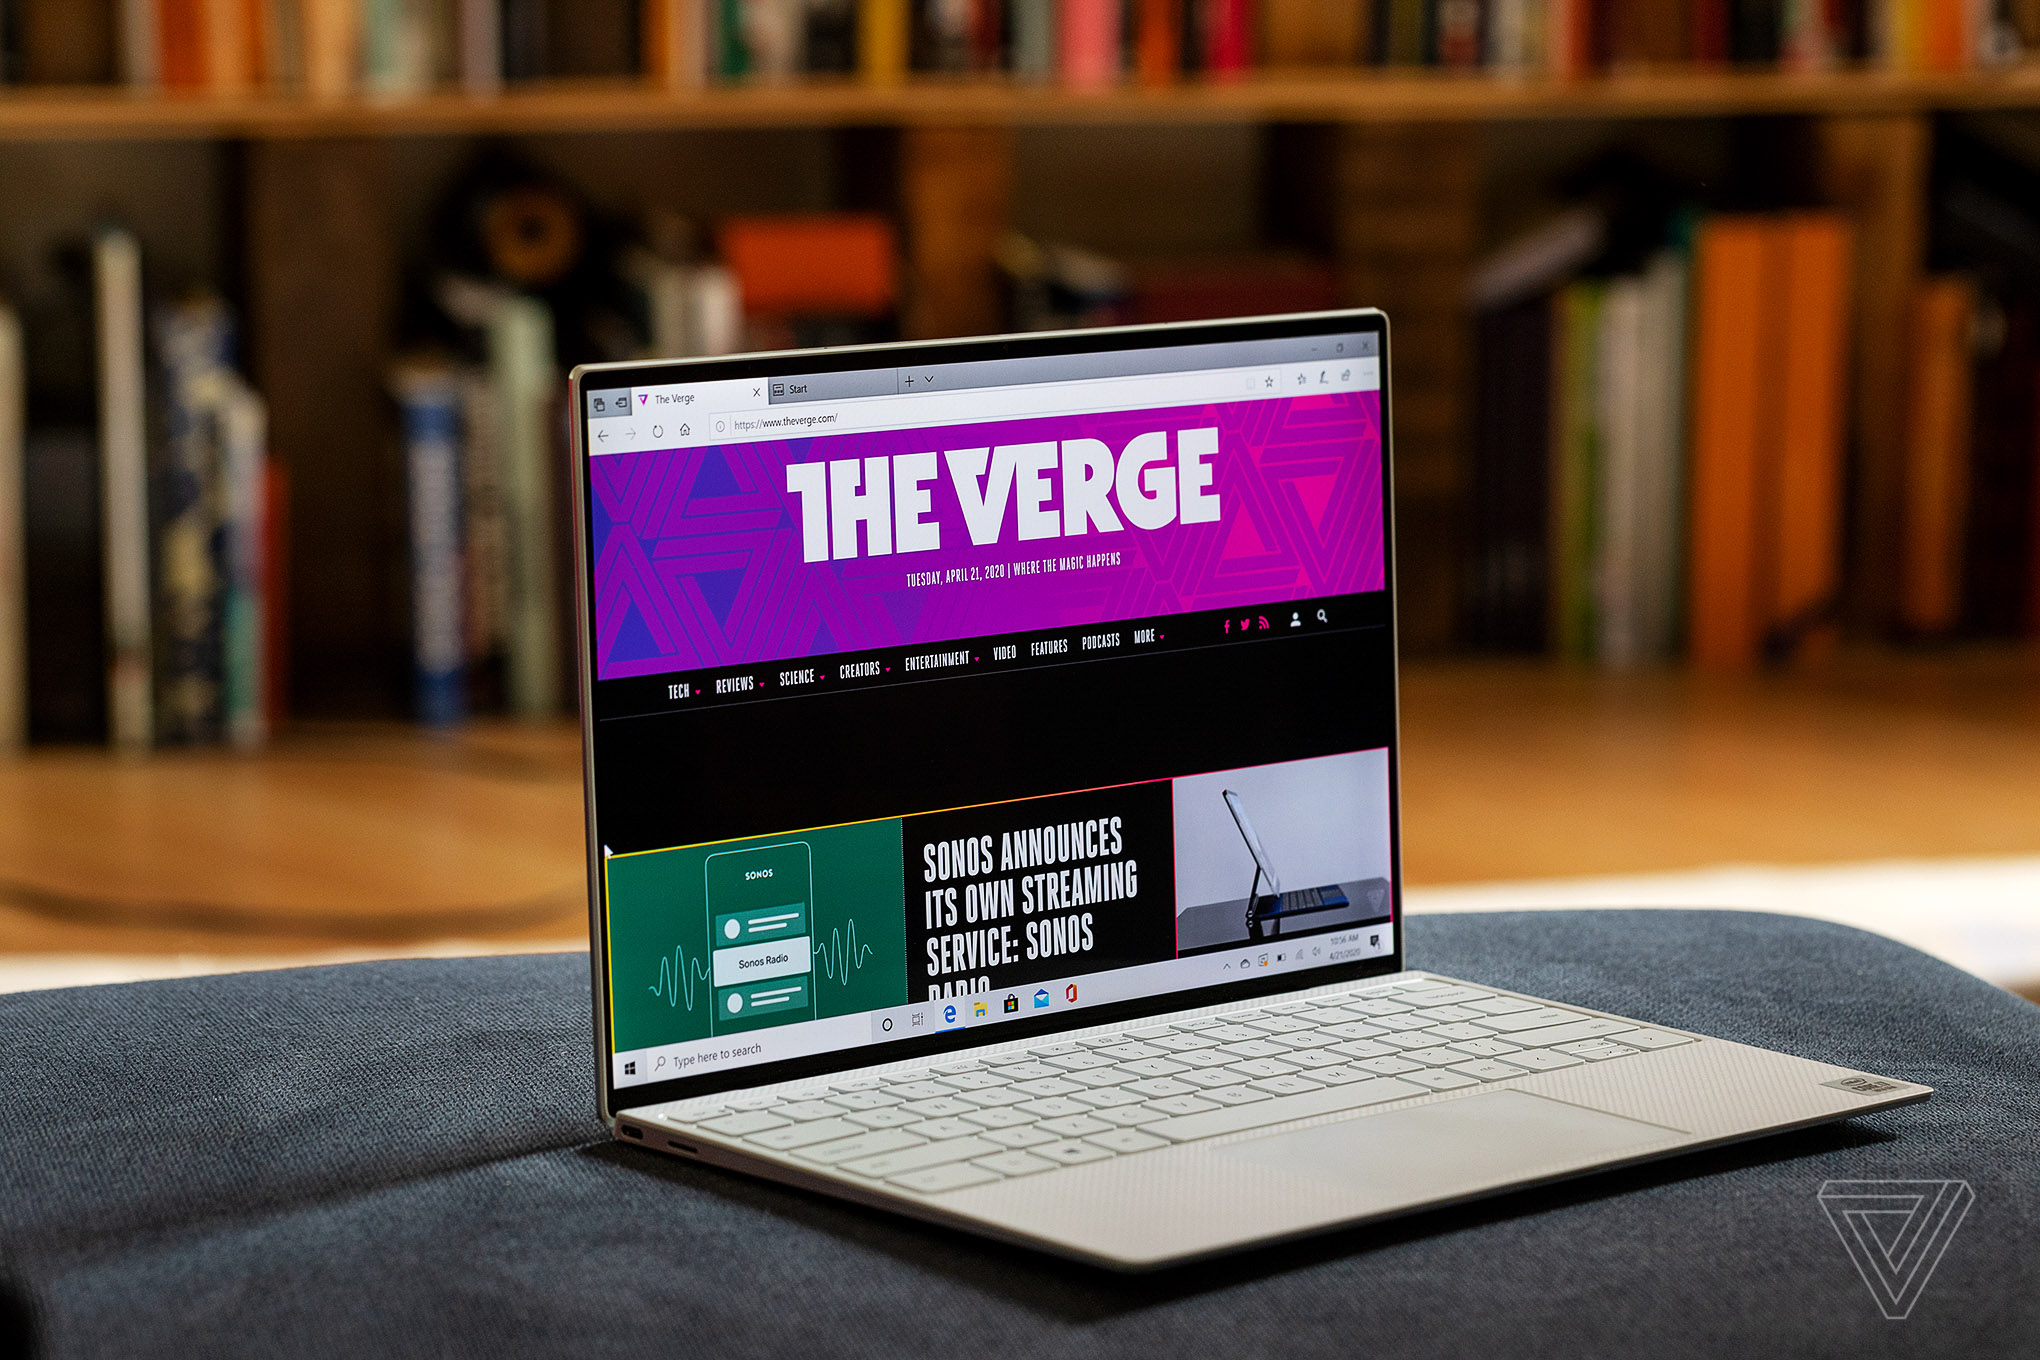 Best Laptops 2020: Dell XPS 13